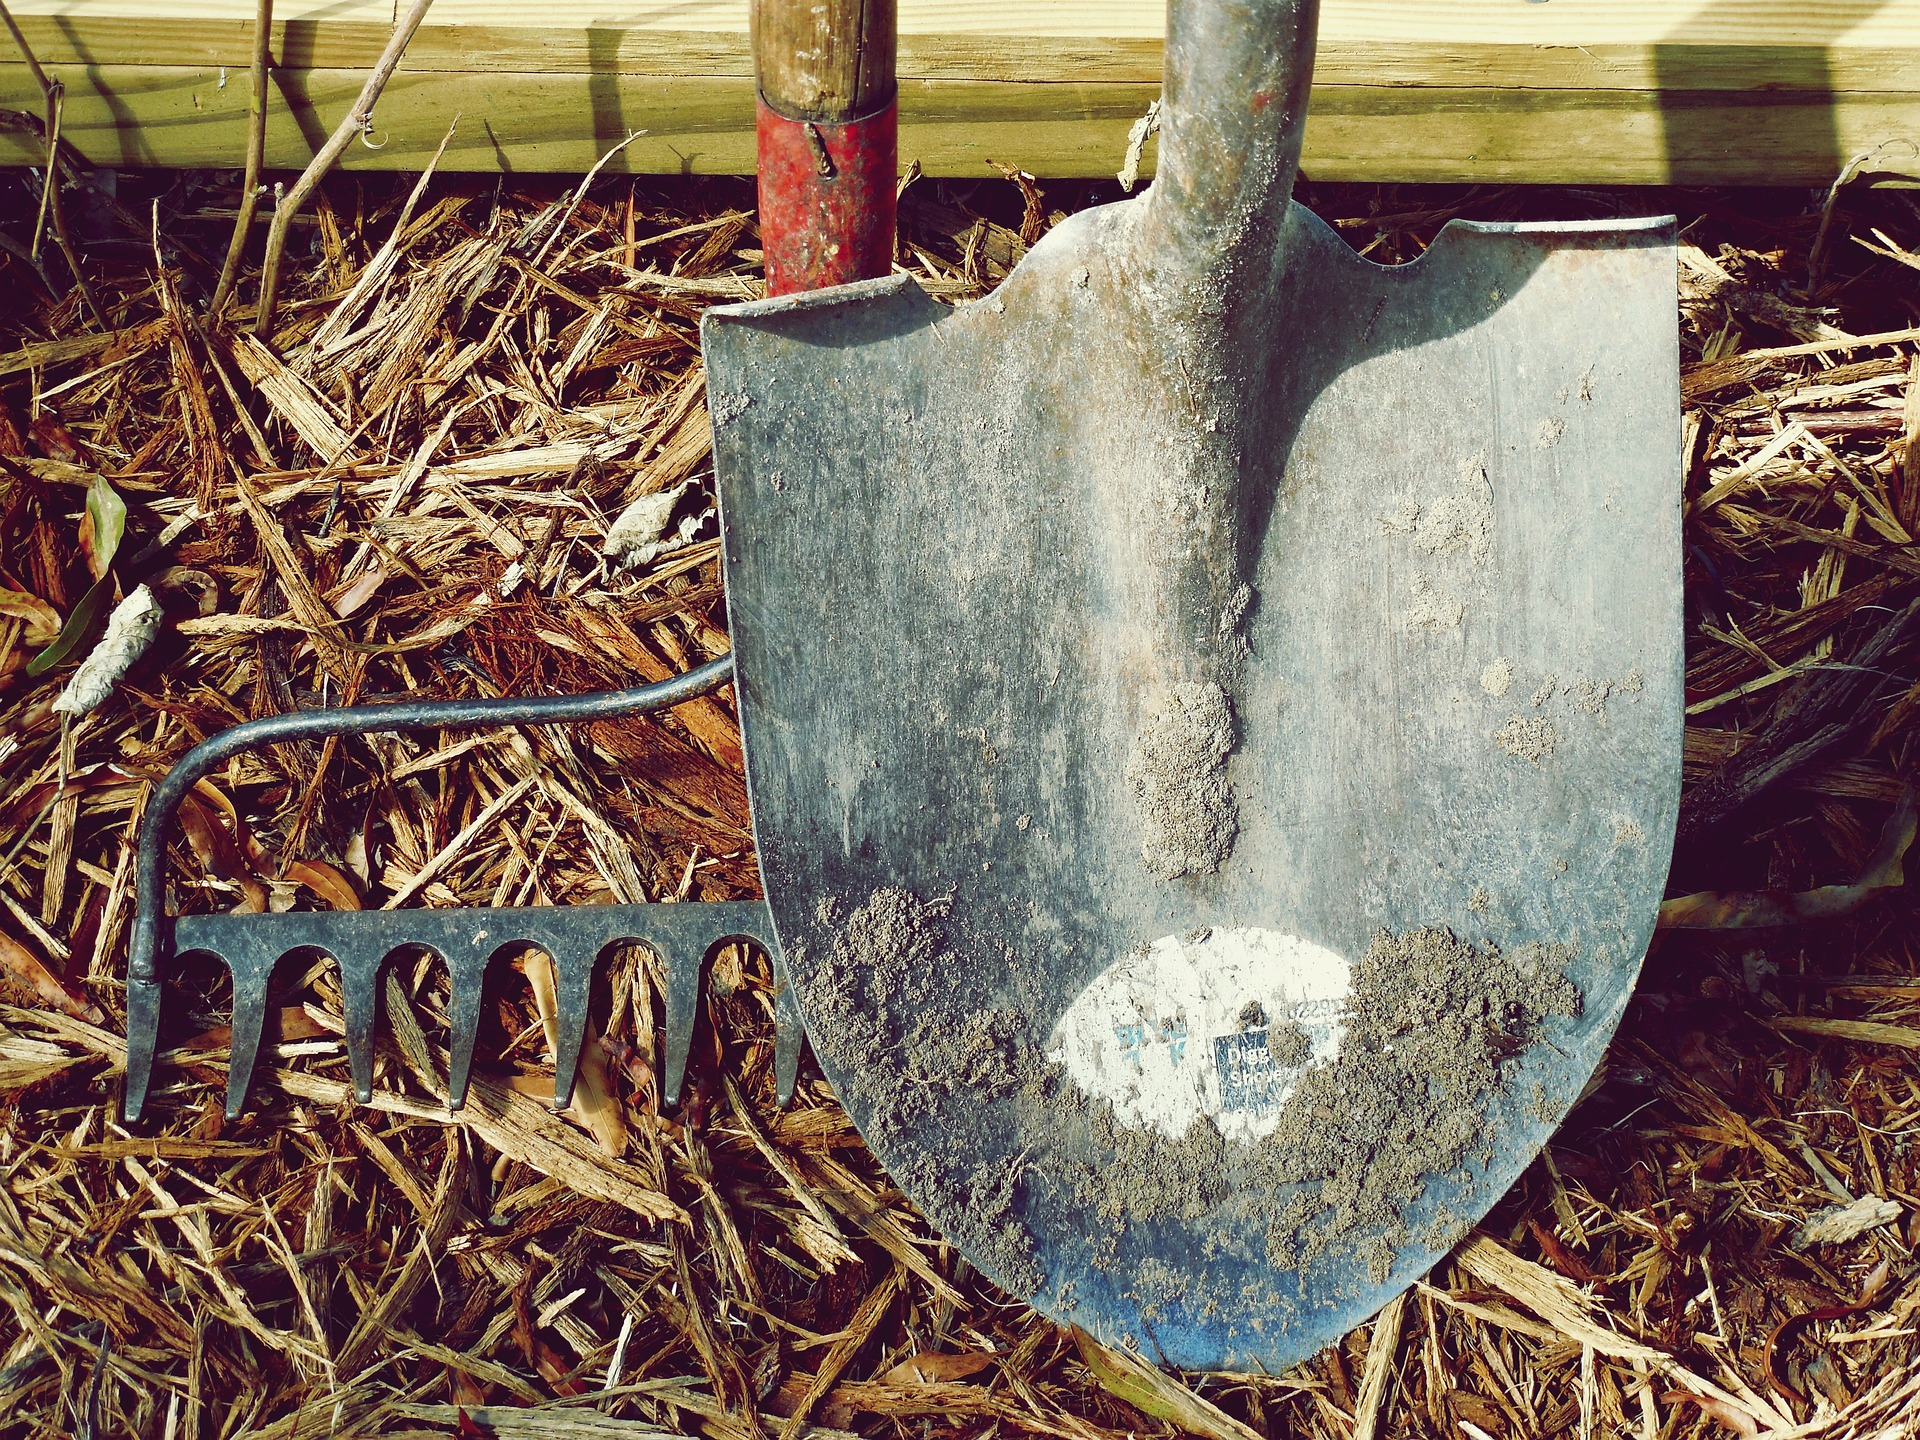 How to Properly Dethatch Your Lawn